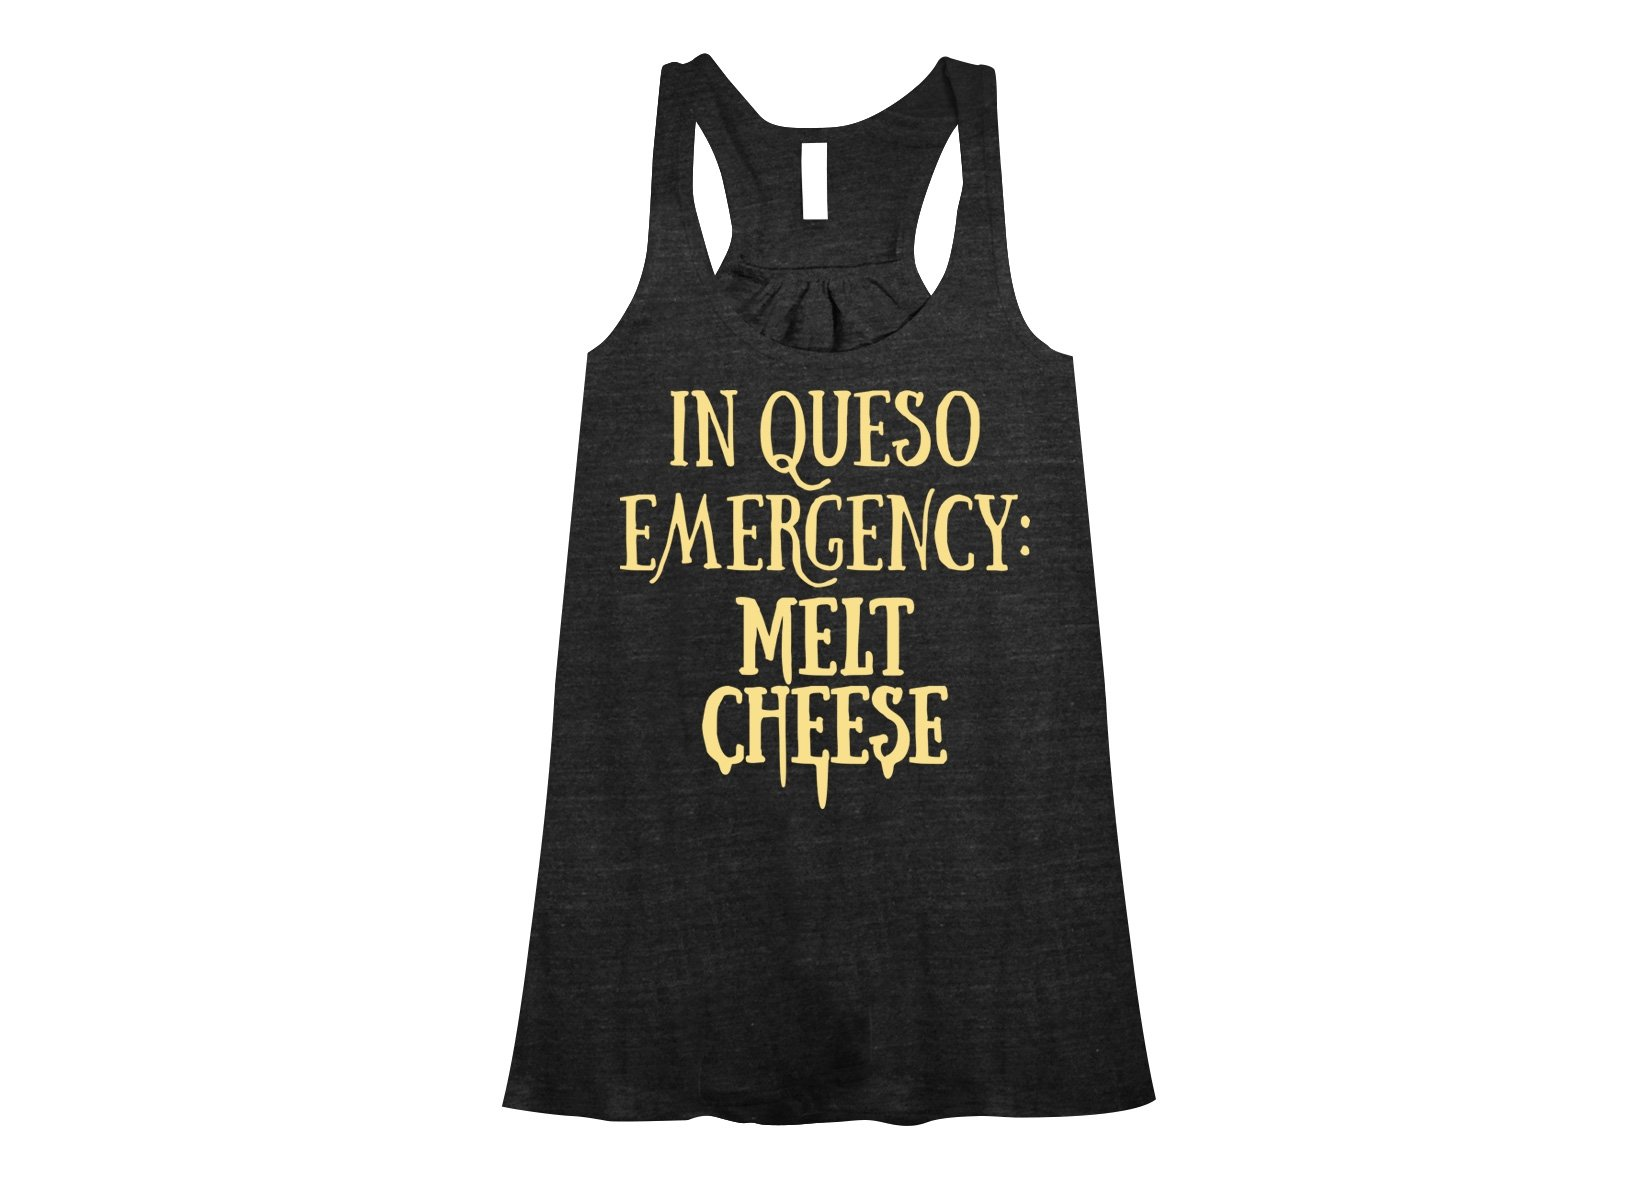 In Queso Emergency: Melt Cheese on Womens Tanks T-Shirt